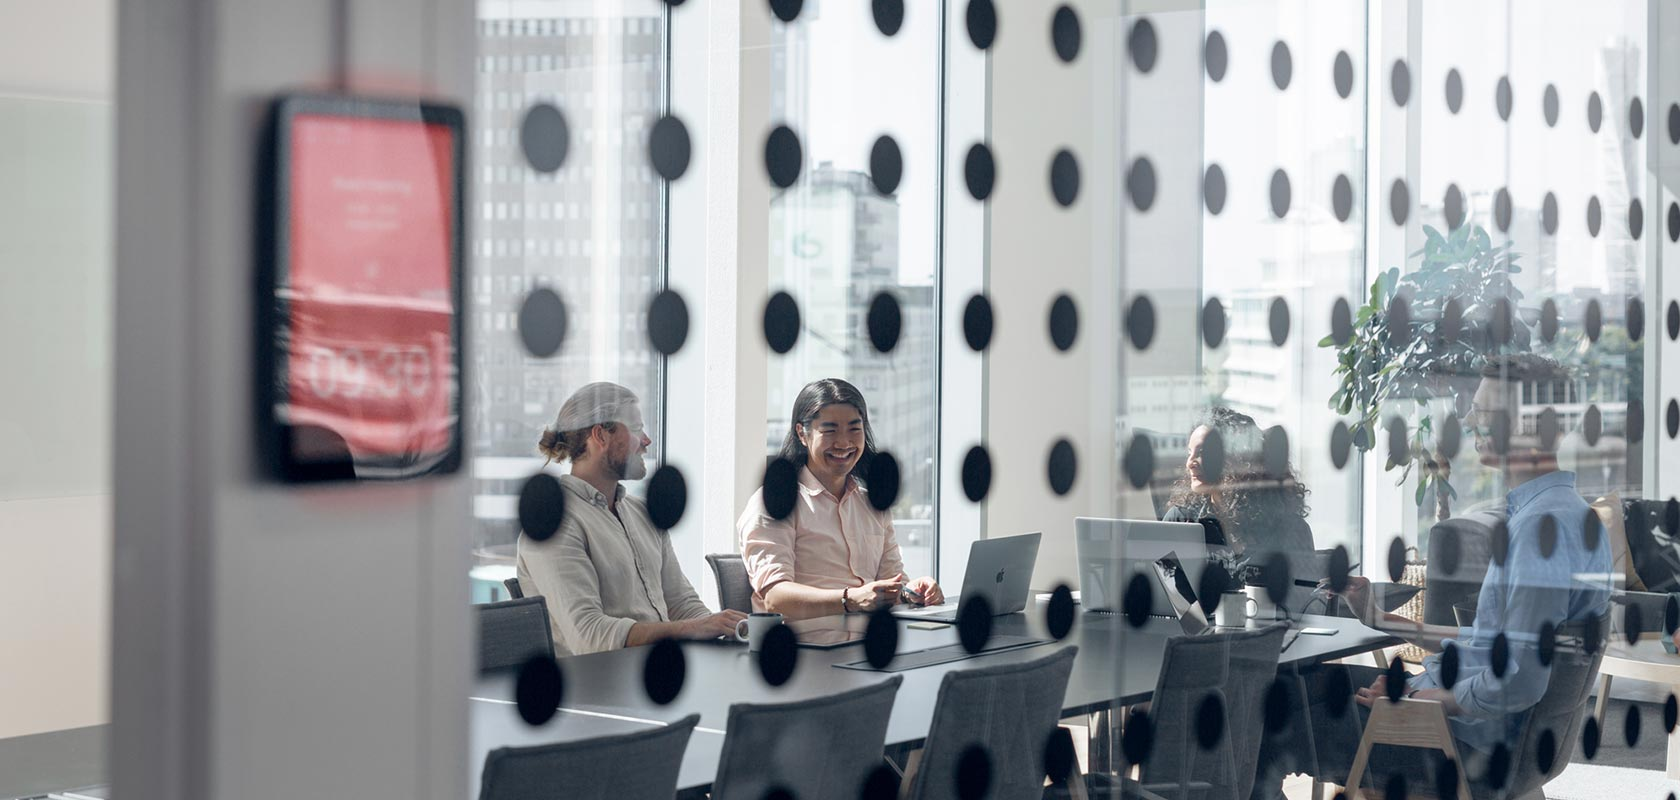 Group of people in a meeting room